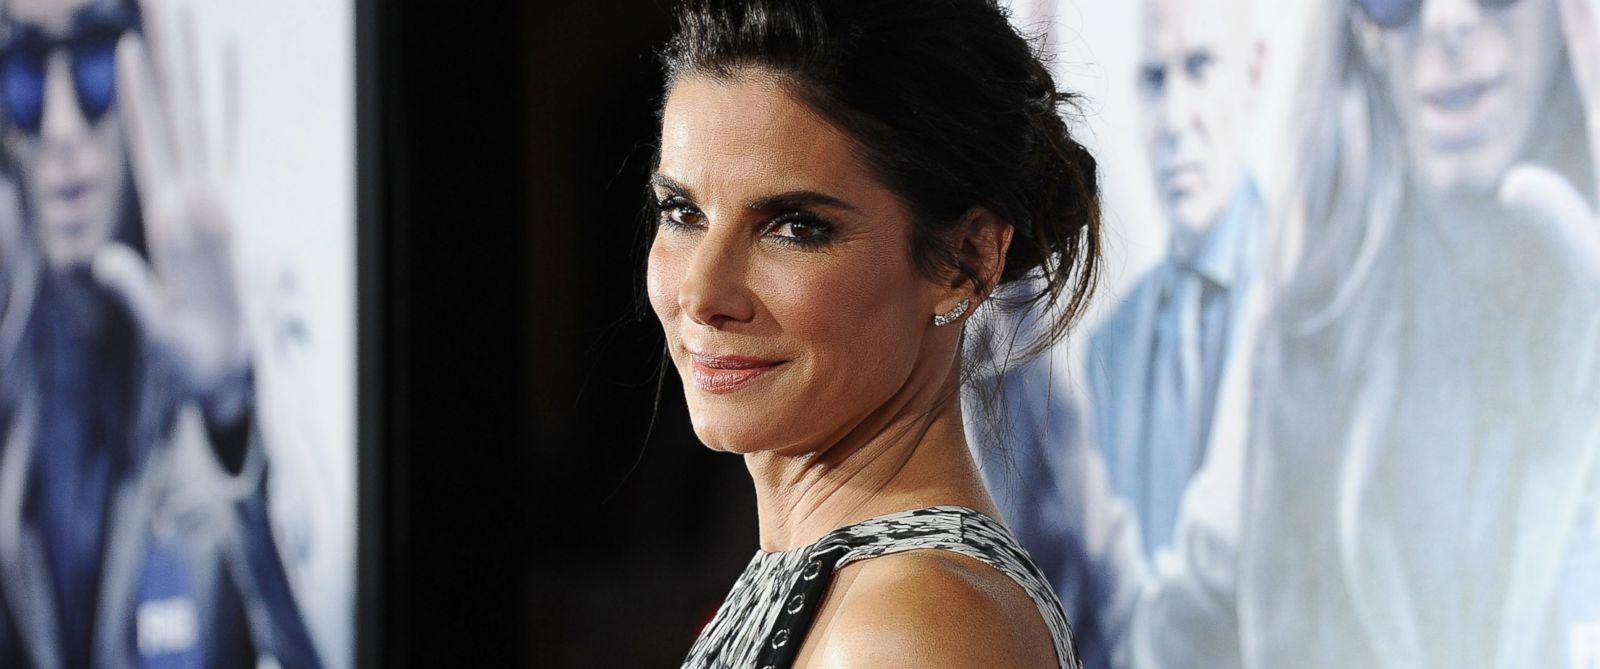 """PHOTO: Actress Sandra Bullock attends the premiere of """"Our Brand Is Crisis"""" at TCL Chinese Theatre in this Oct. 26, 2015 file photo in Hollywood, Calif."""